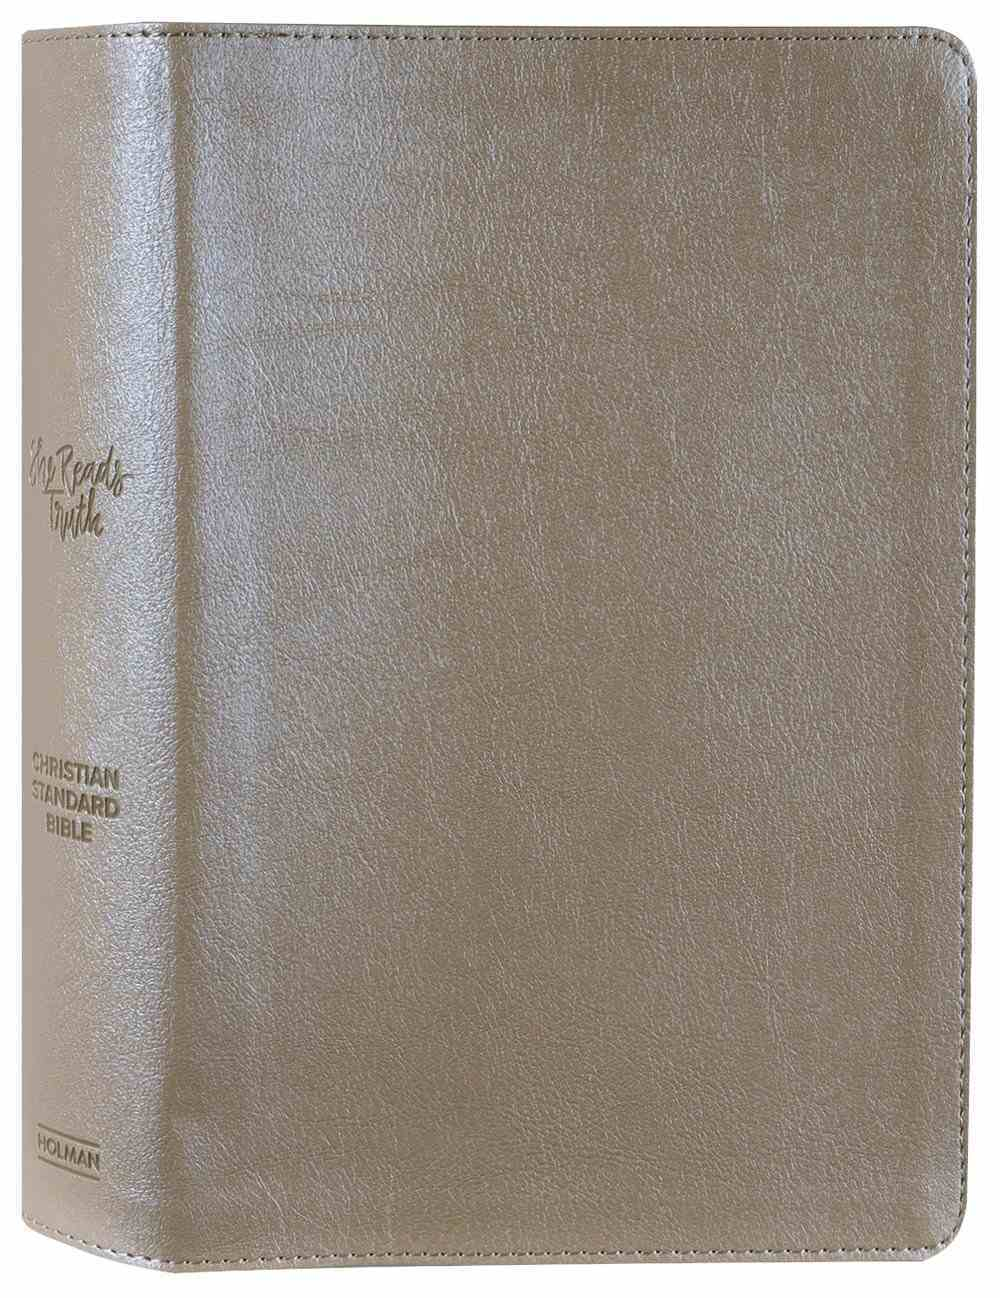 CSB She Reads Truth Bible Champagne Hardback